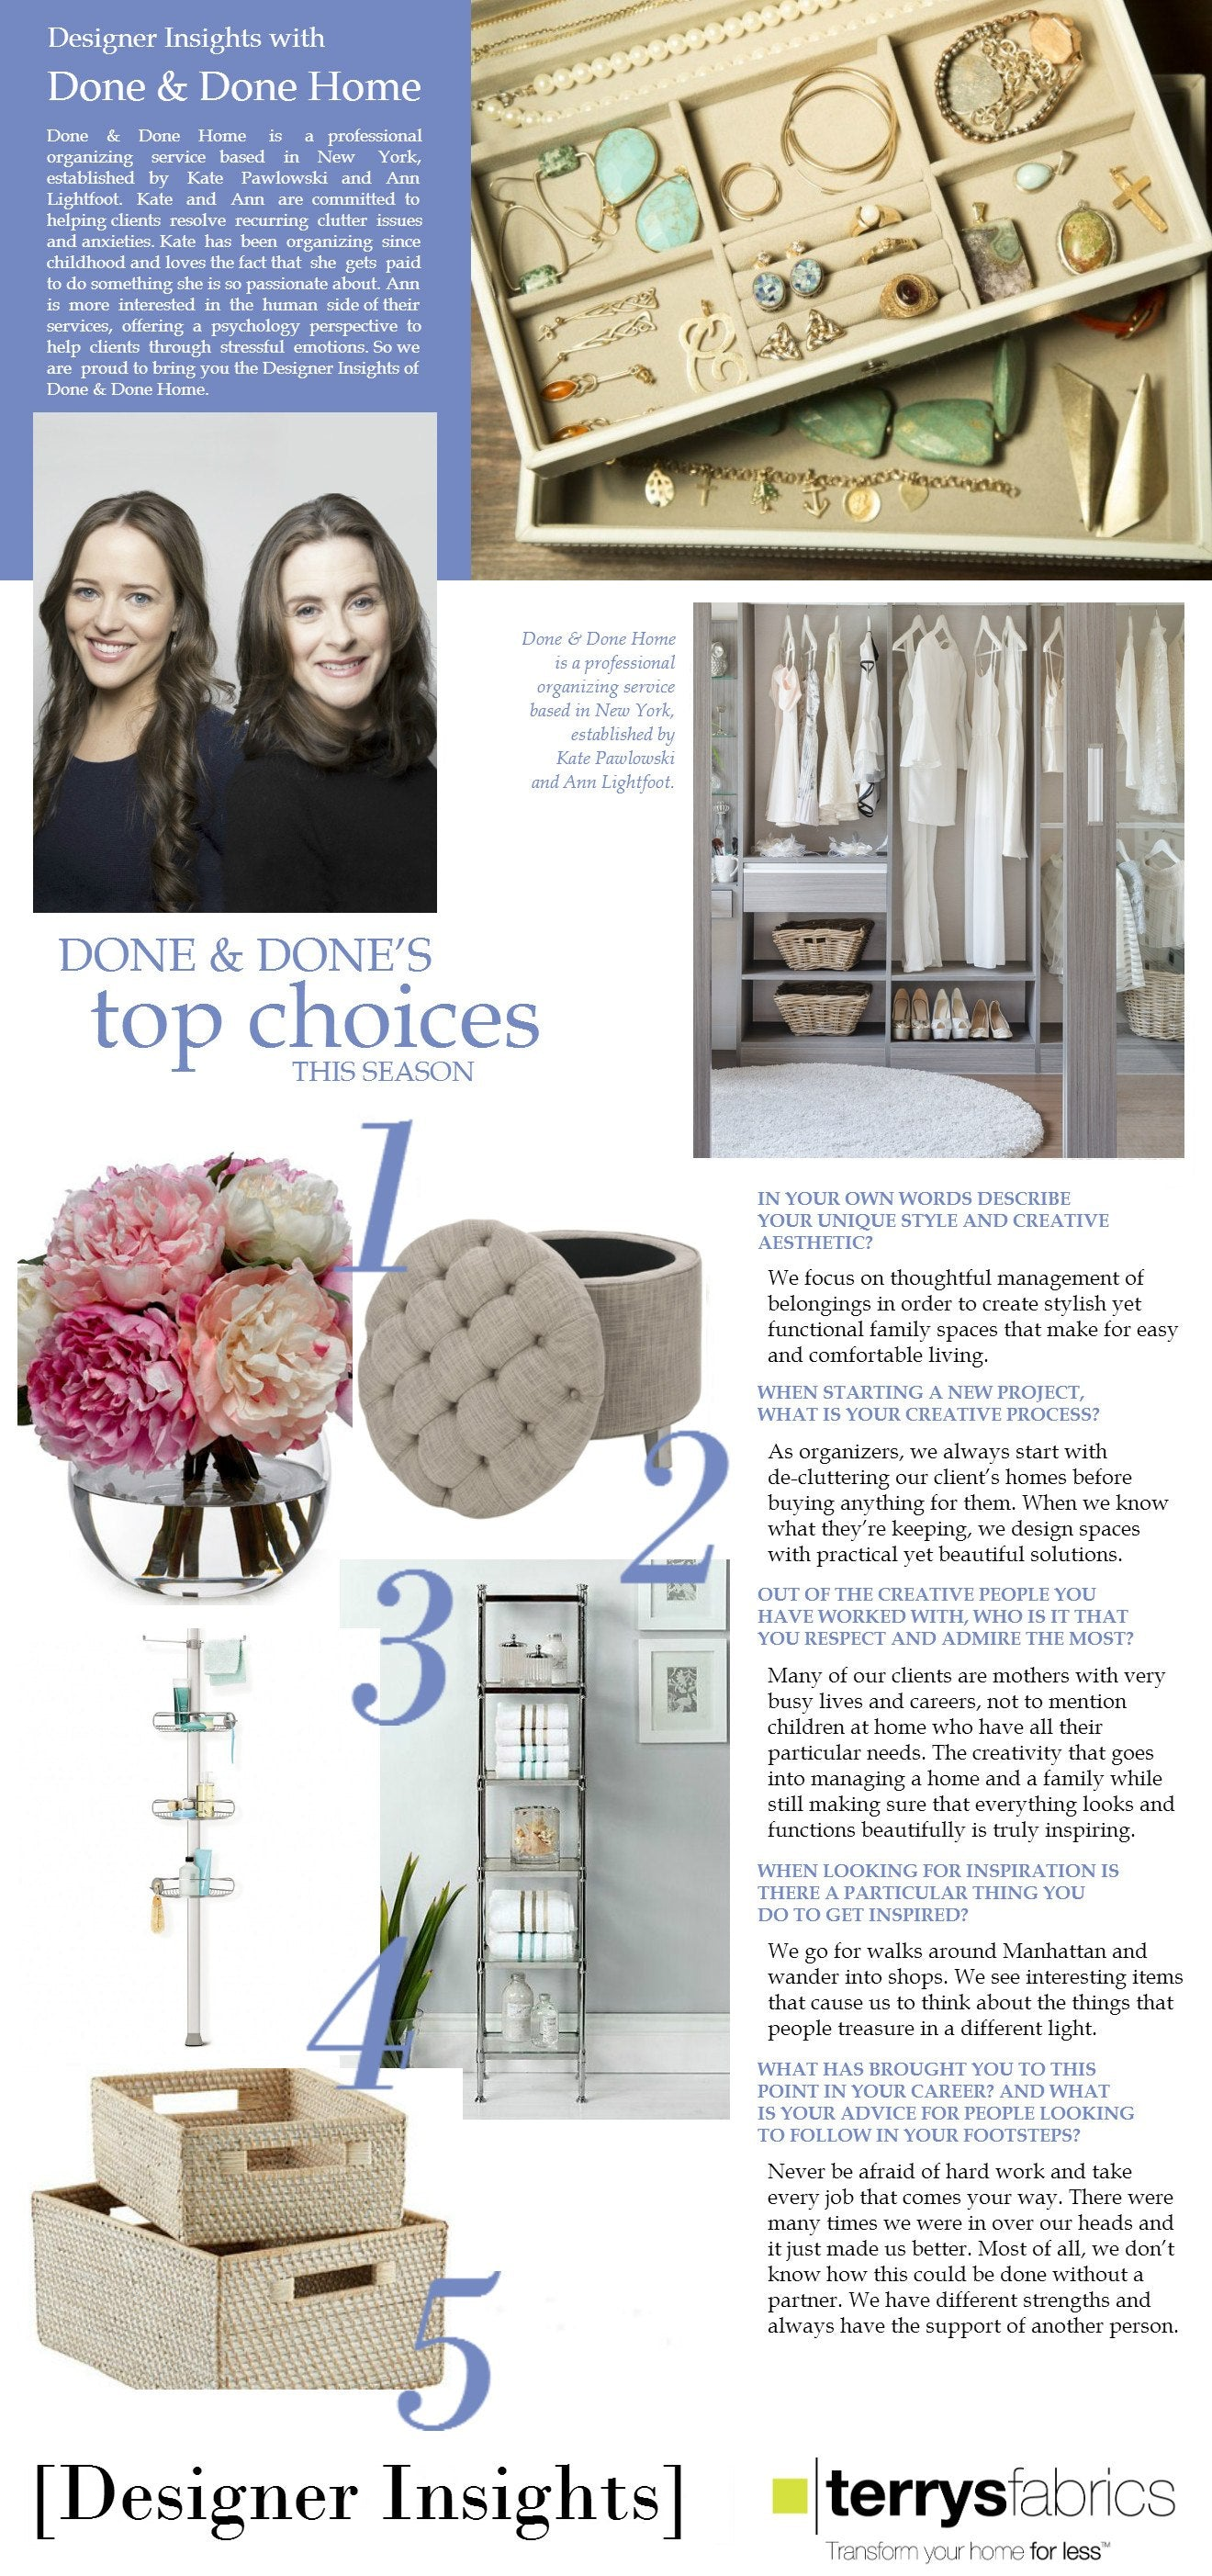 Designer Insights - DoneDoneHome